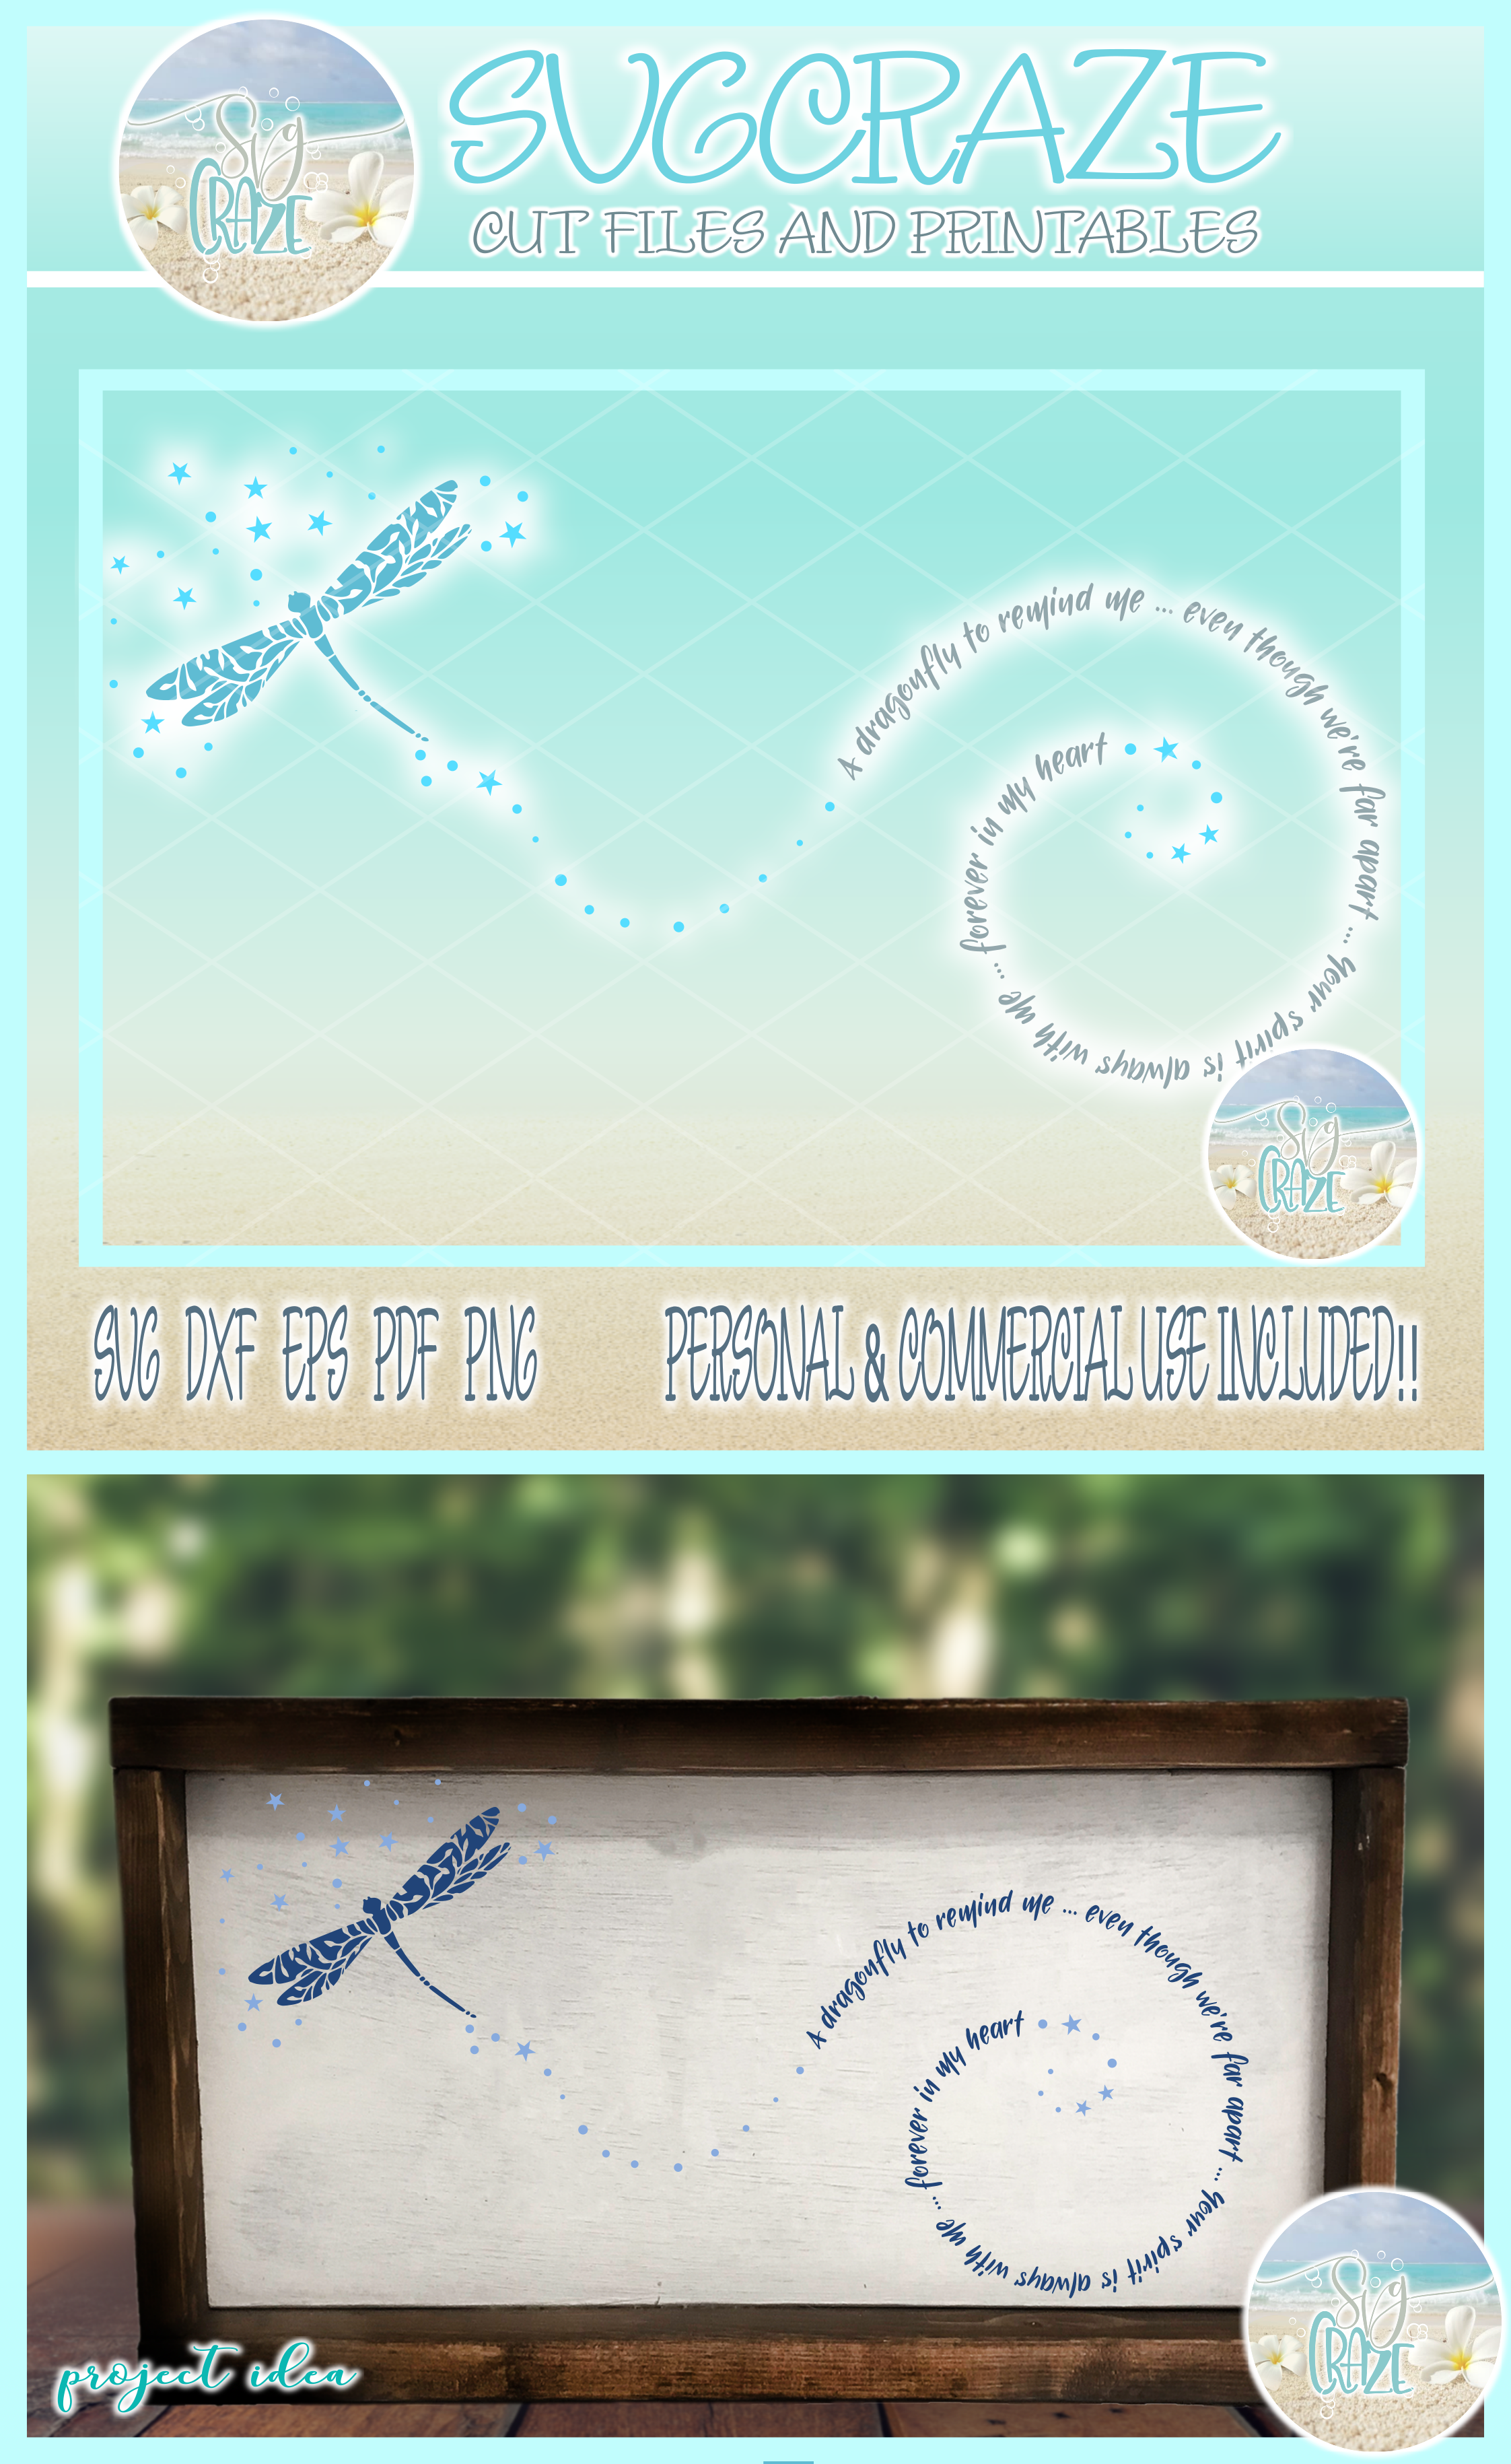 Dragonfly to Remind Me Mandala Zentangle SVG Dxf Eps Png example image 4